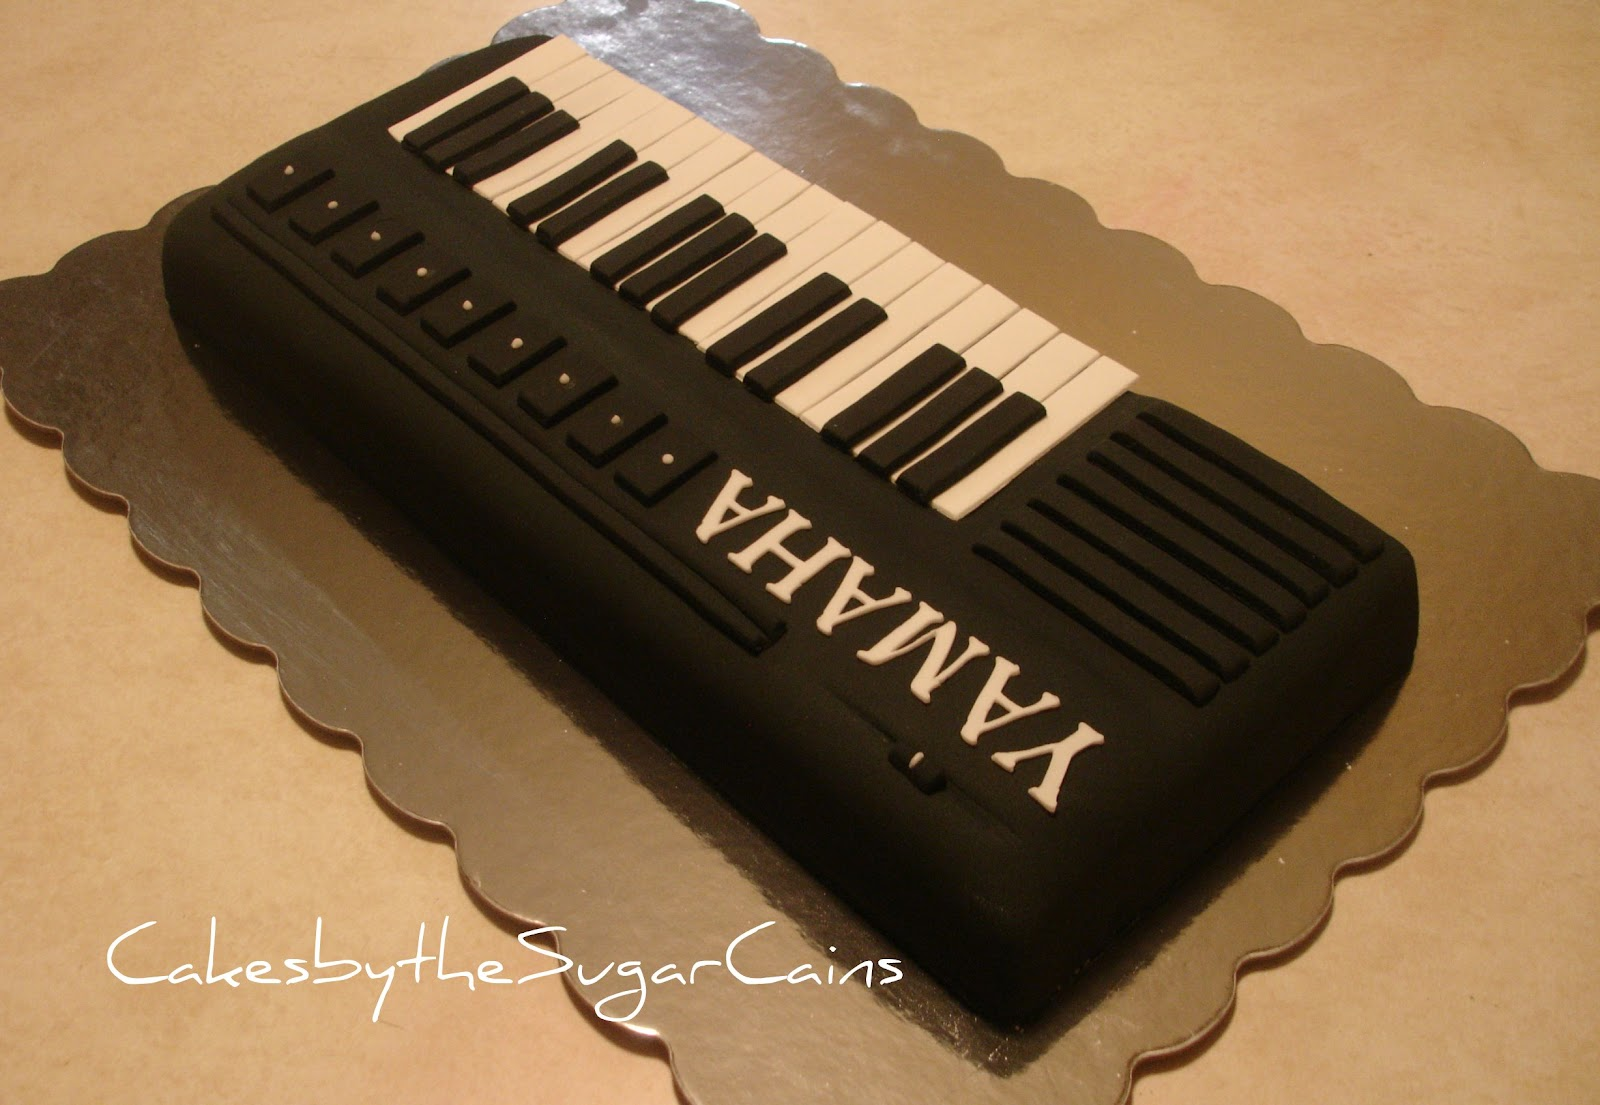 Birthday Cake Made Out Of Keyboard Letters